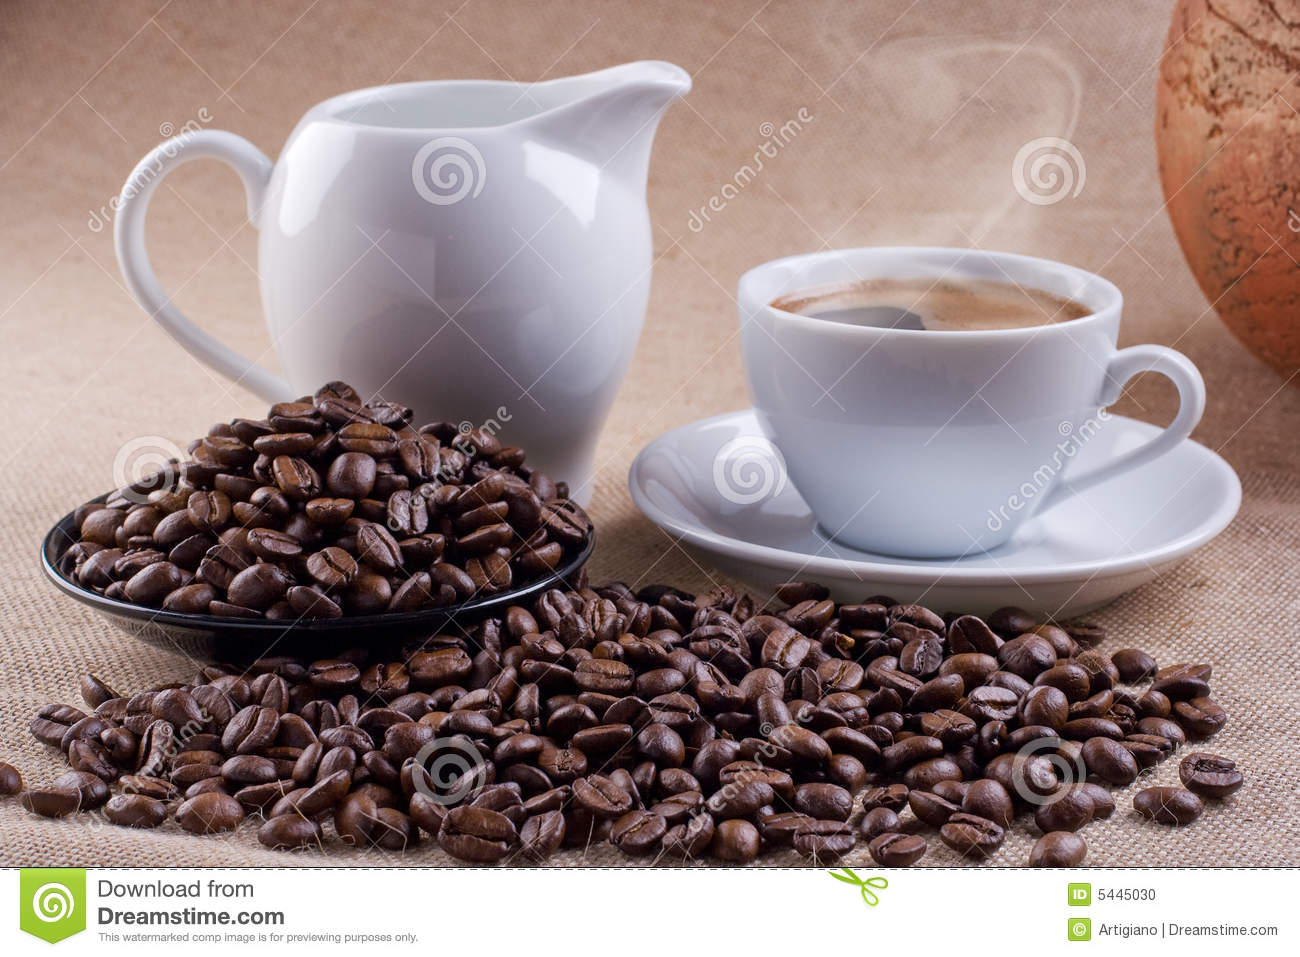 Coffee with can of milk